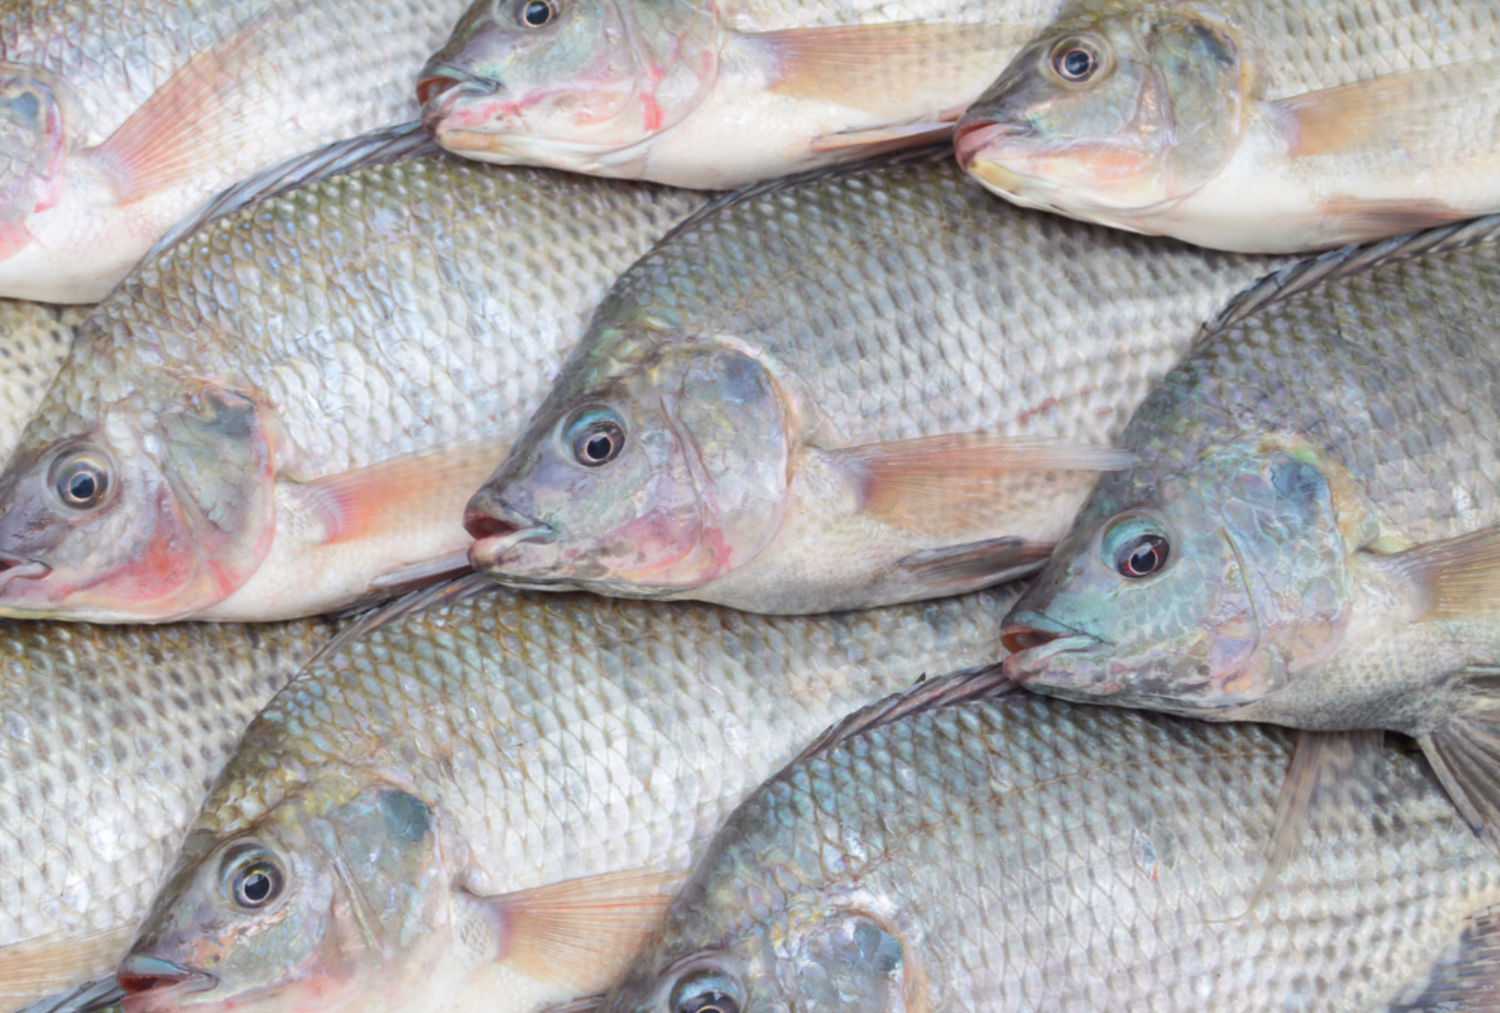 How aquaculture is threatening the native fish species of for Fishing for tilapia